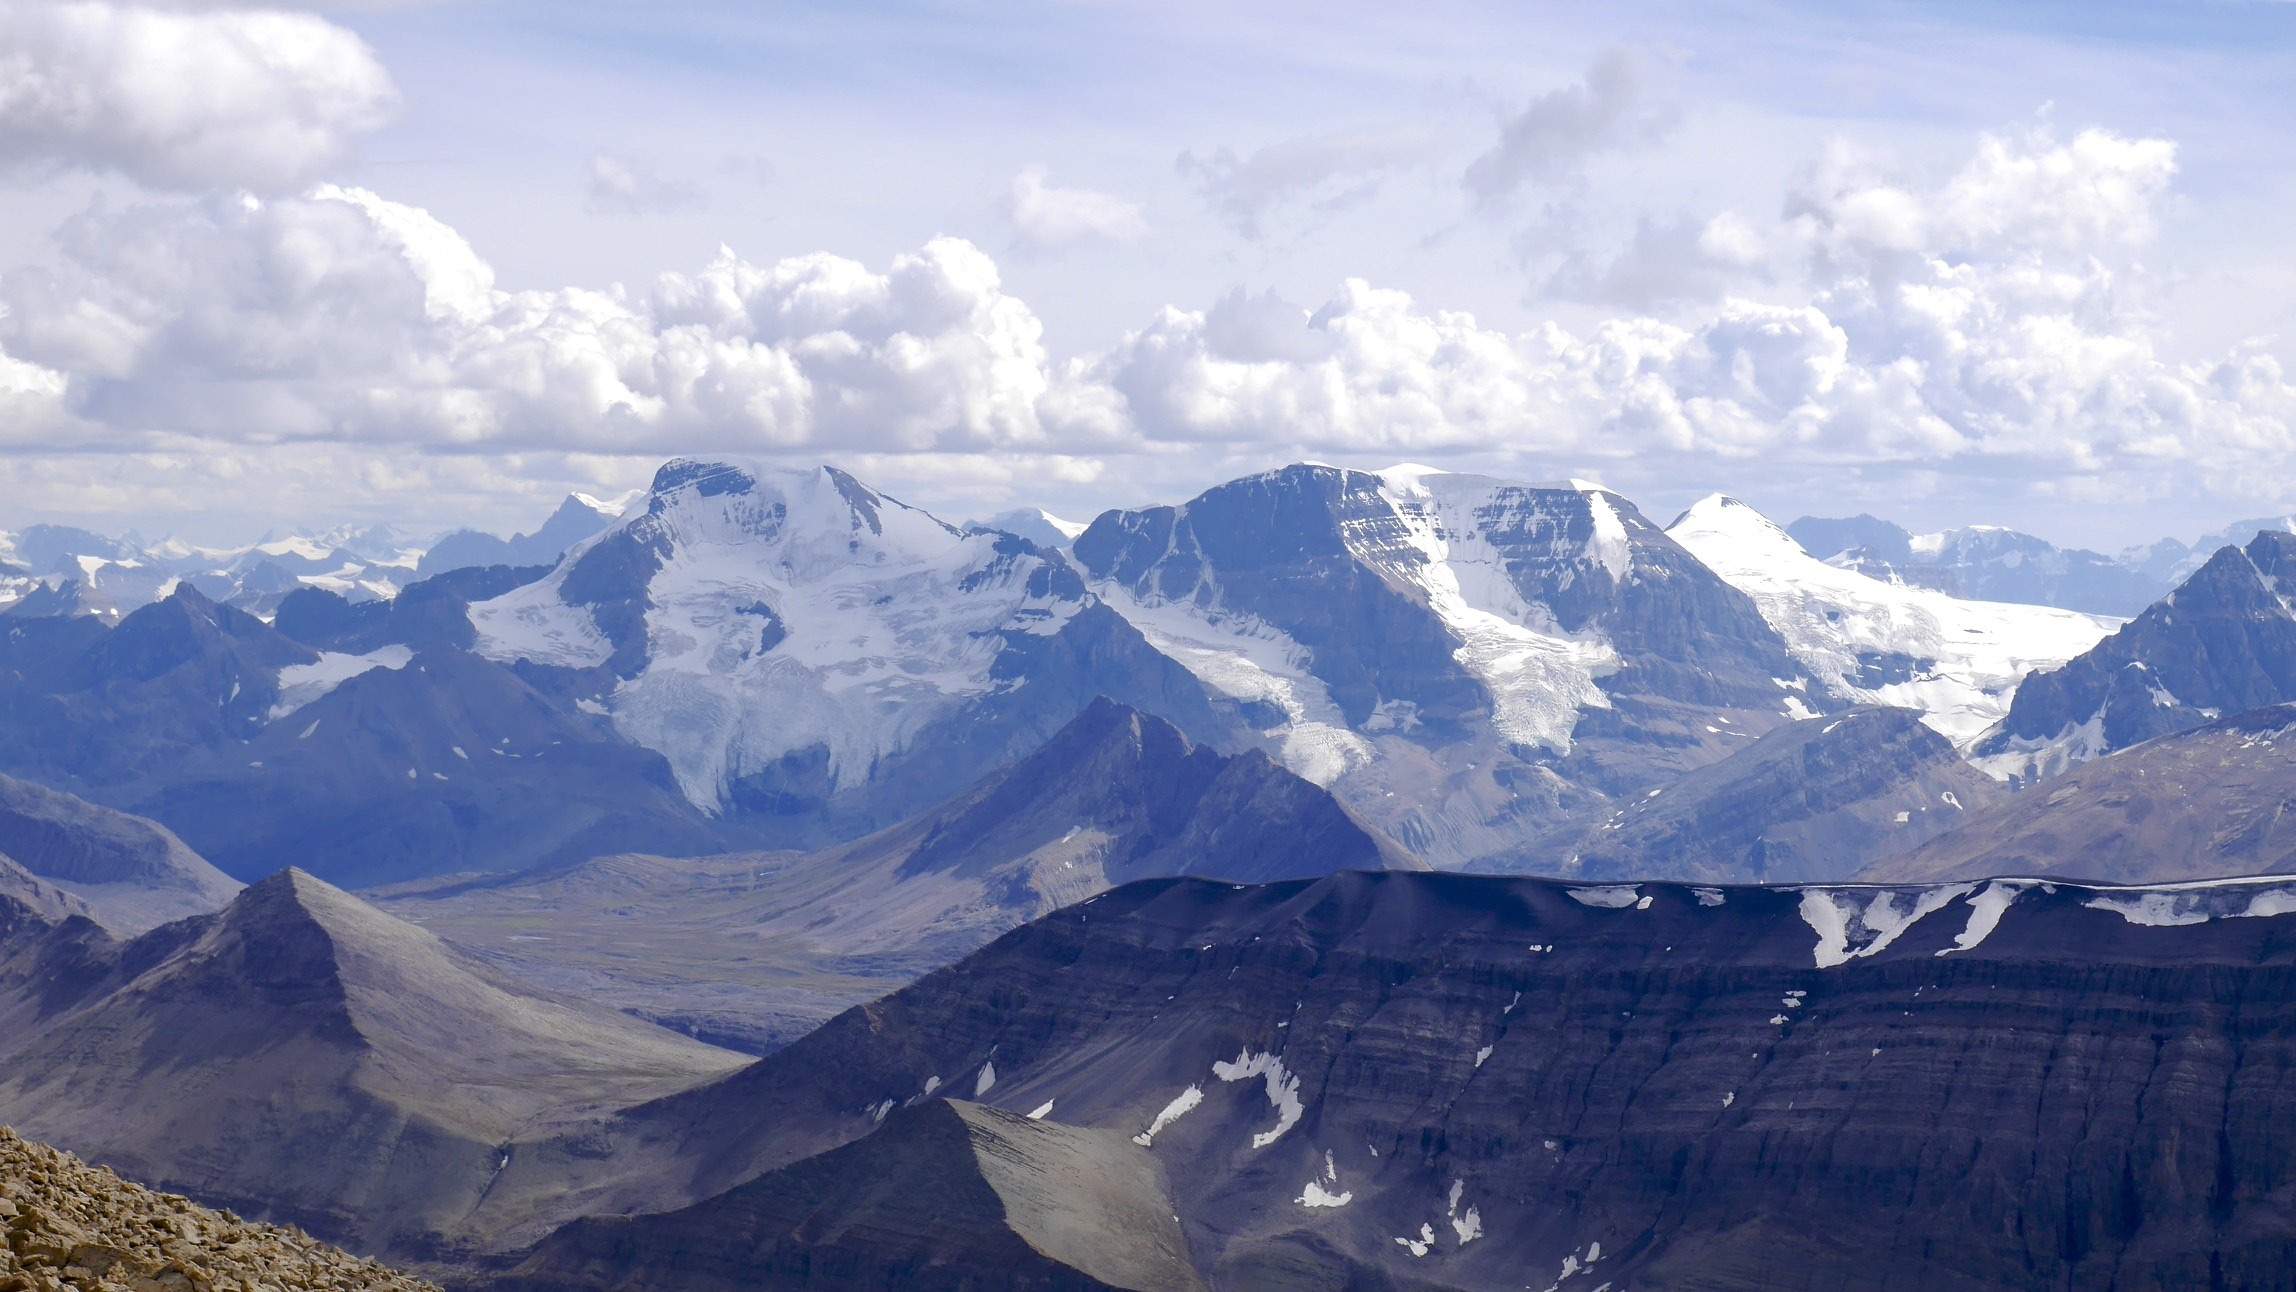 Mt. Athabasca and Mt. Andromeda from Sunwapta Peak 3,315m